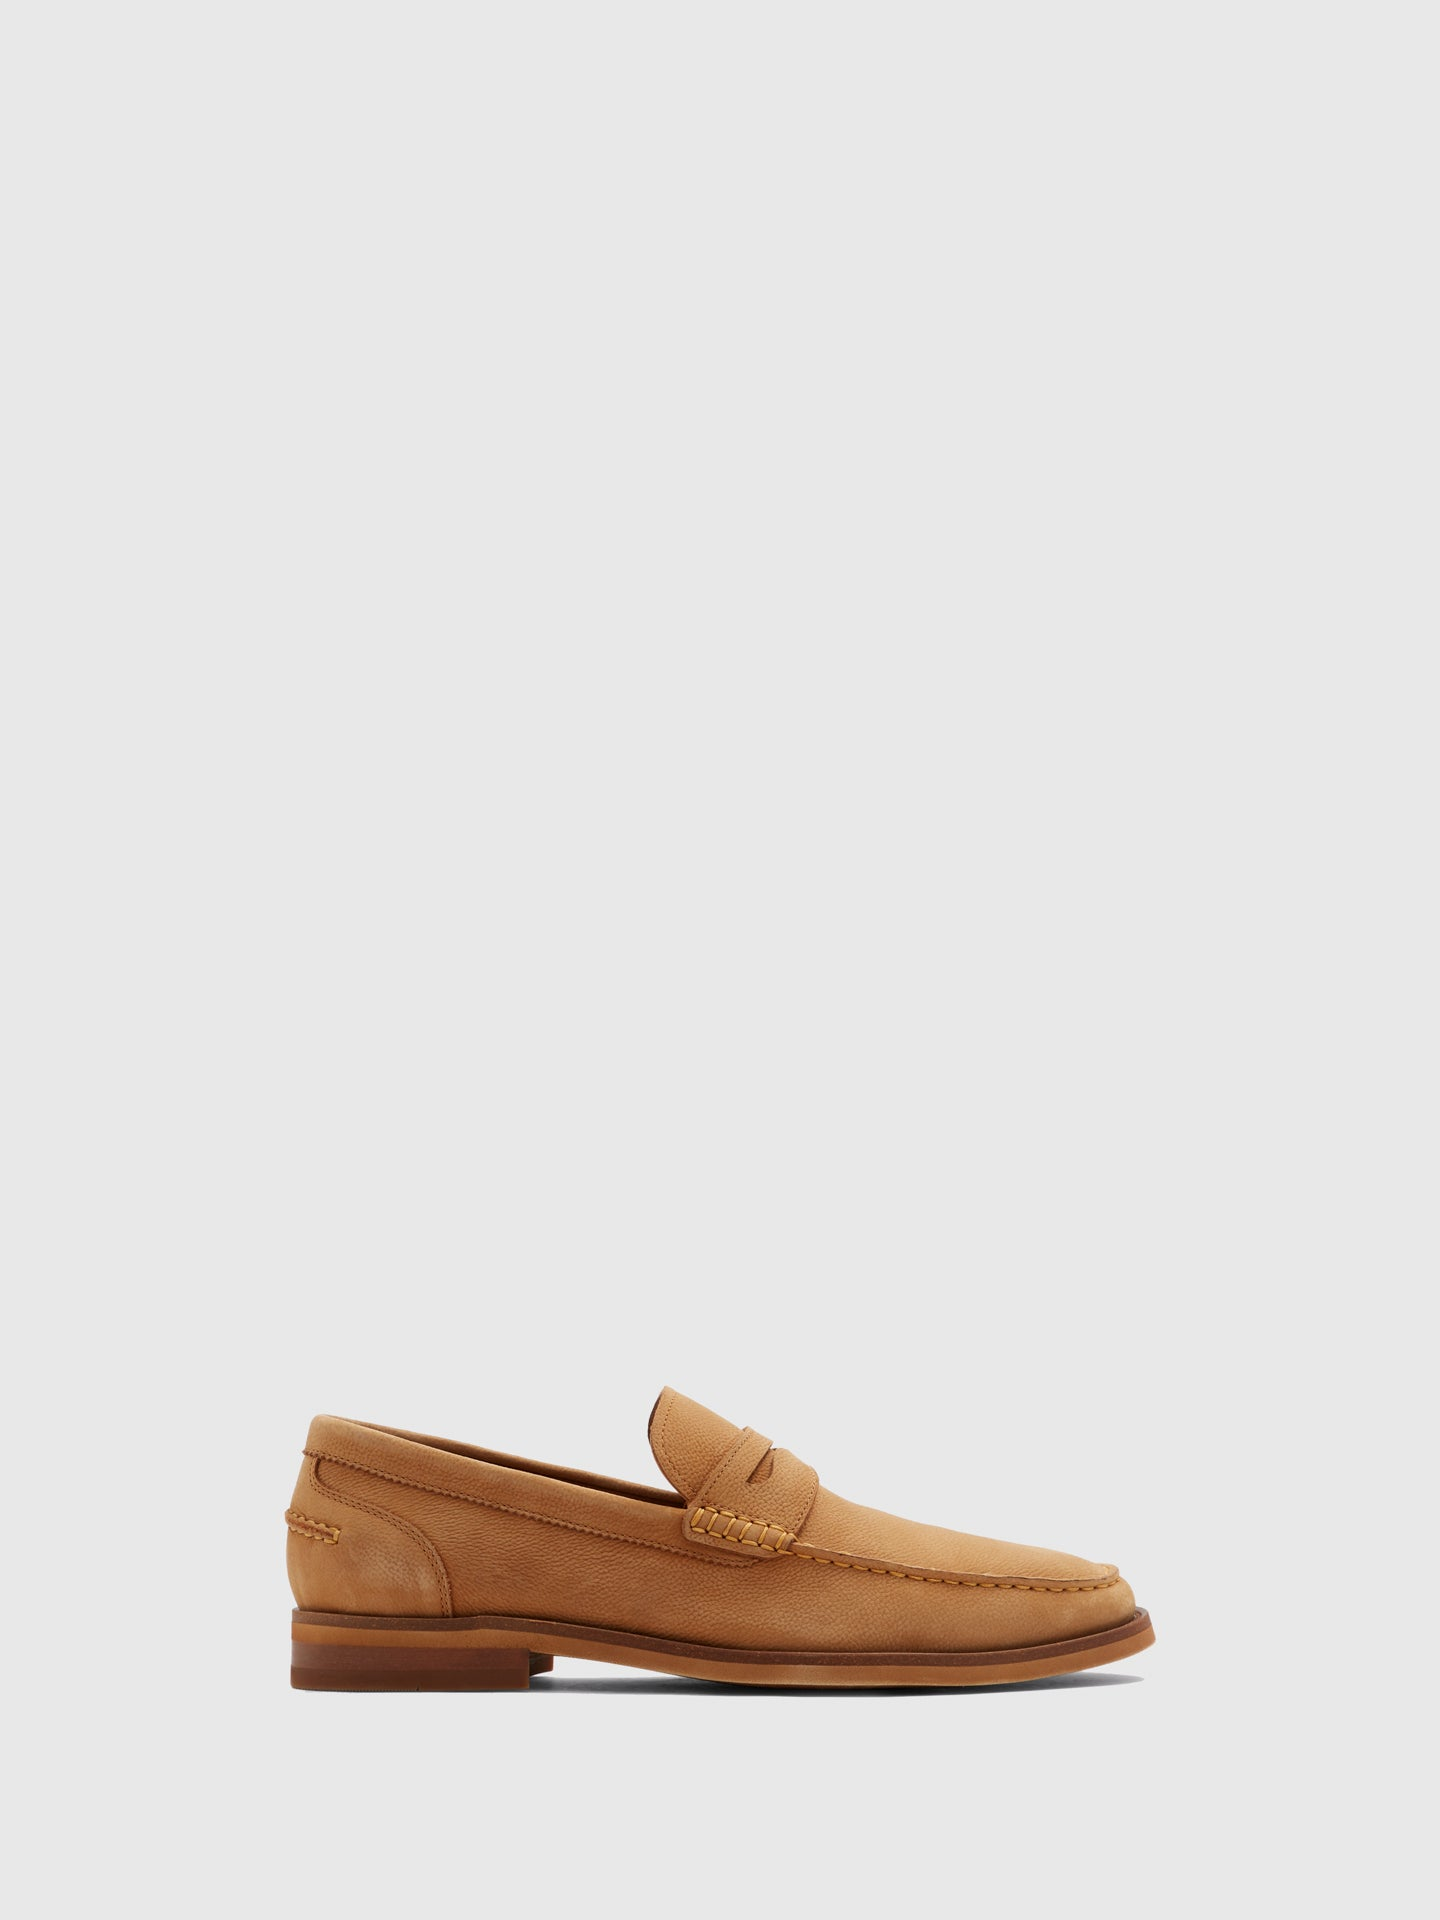 Aldo Beige Loafers Shoes